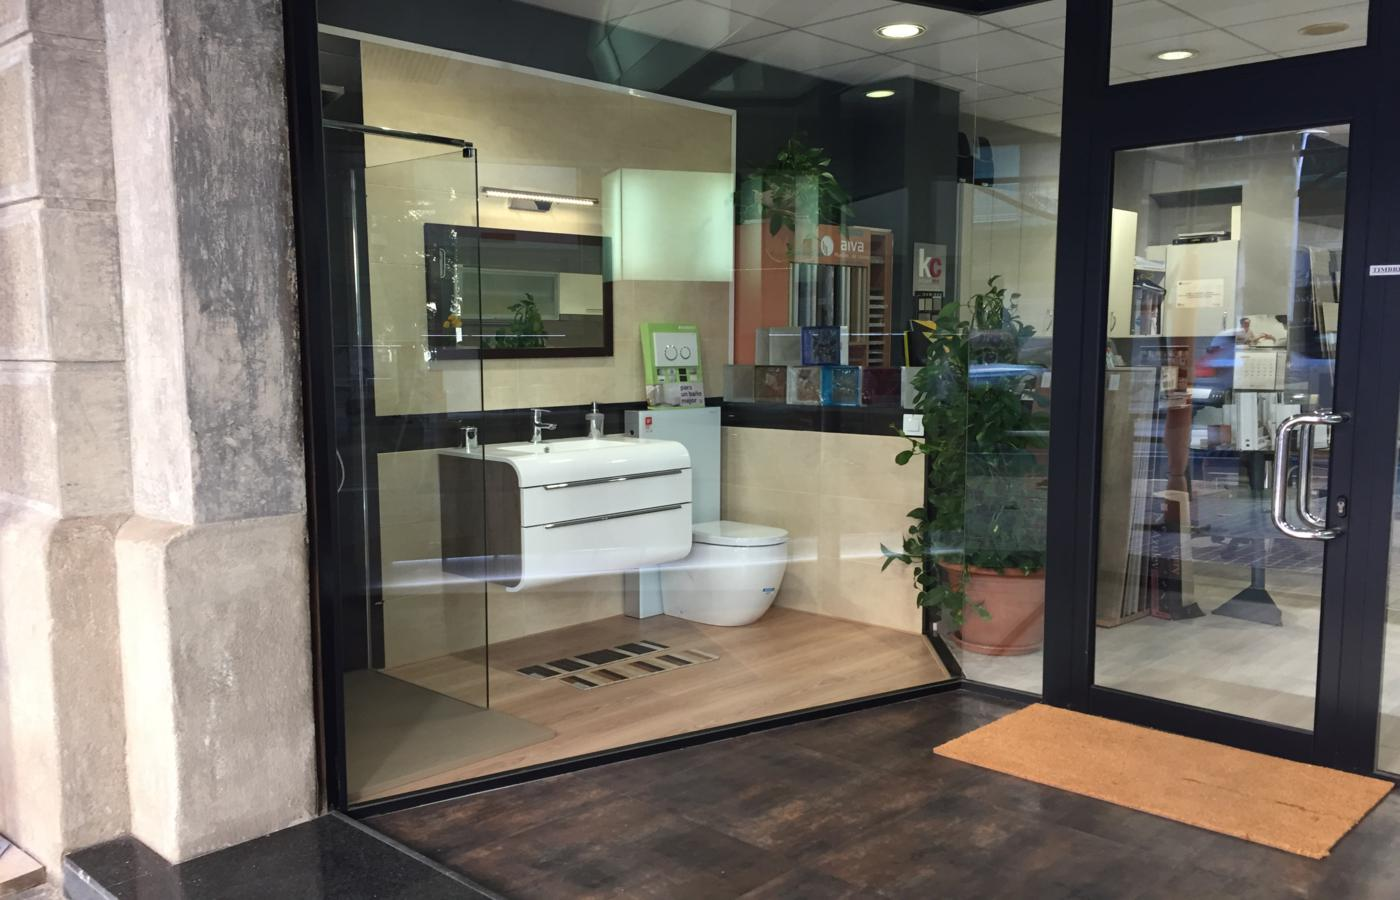 Commercial property for sale in profitability in l'Eixample in Barcelona